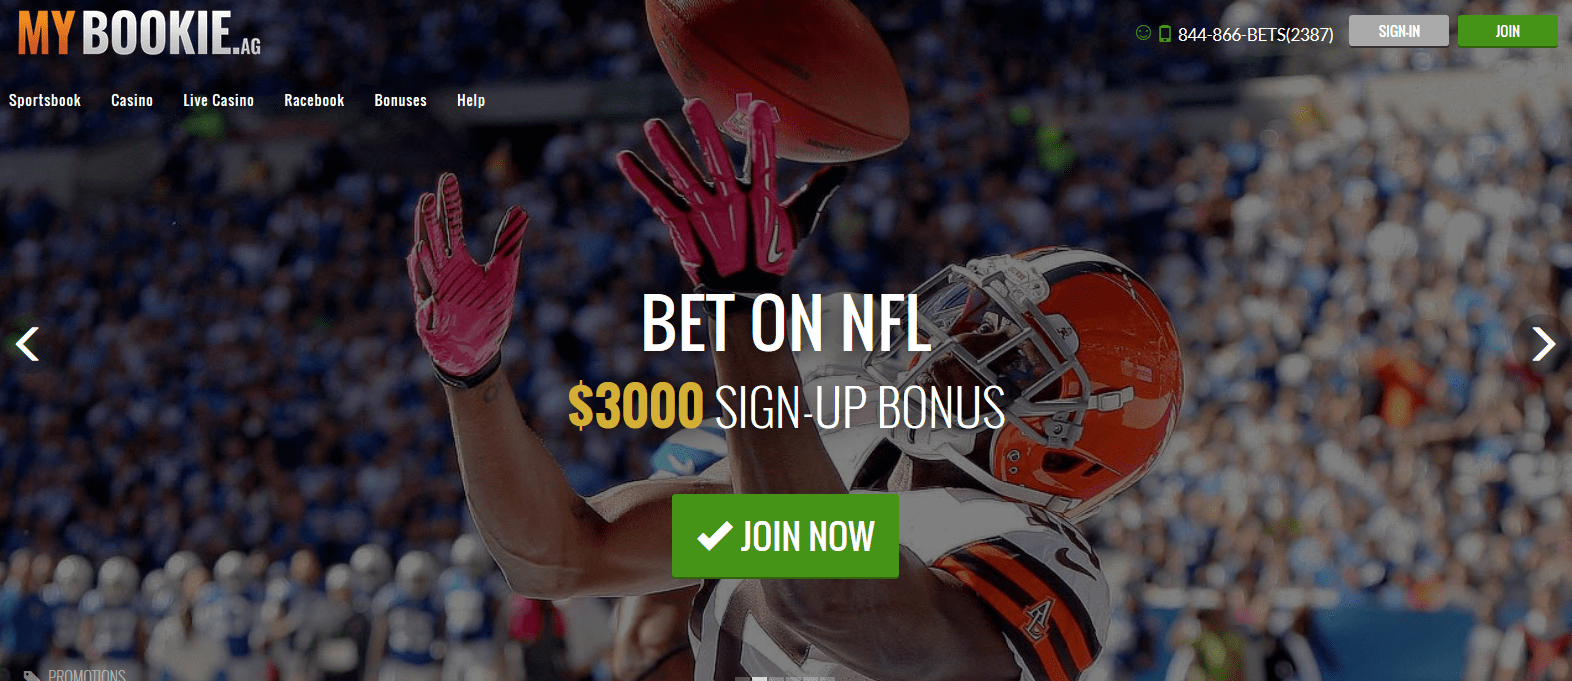 Casino odds super bowl winnings from online gambling